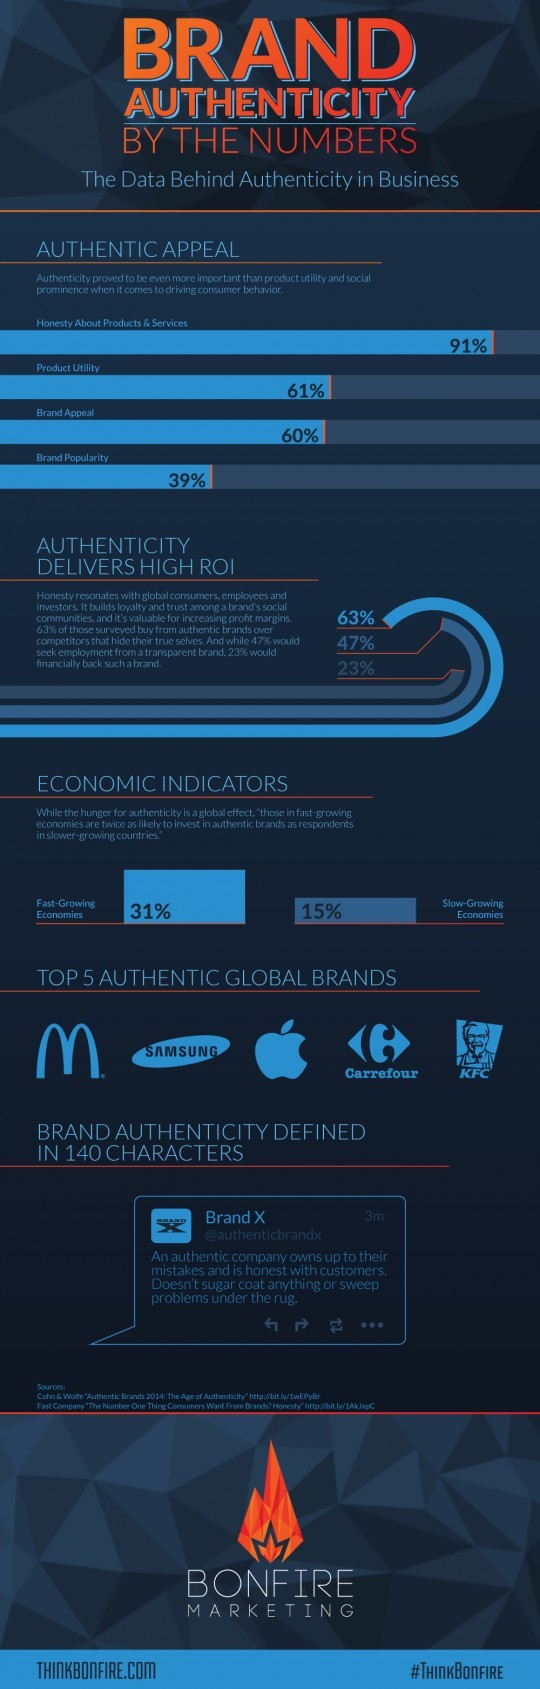 brand-authenticity-by-the-numbers-infographic